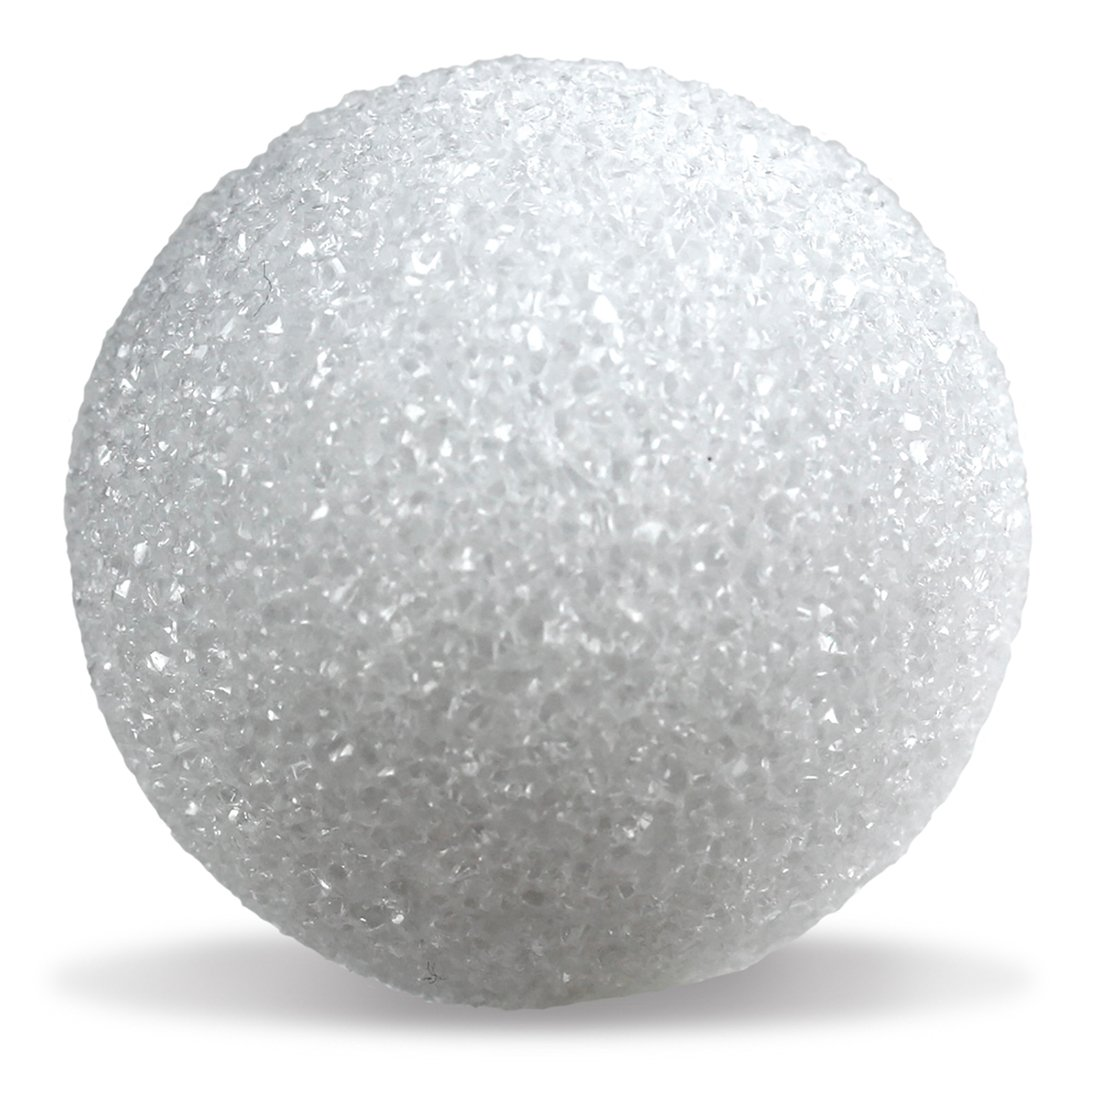 Hygloss Products White Styrofoam Balls for Arts and Crafts – 1 Inch, 100 Pack by Hygloss